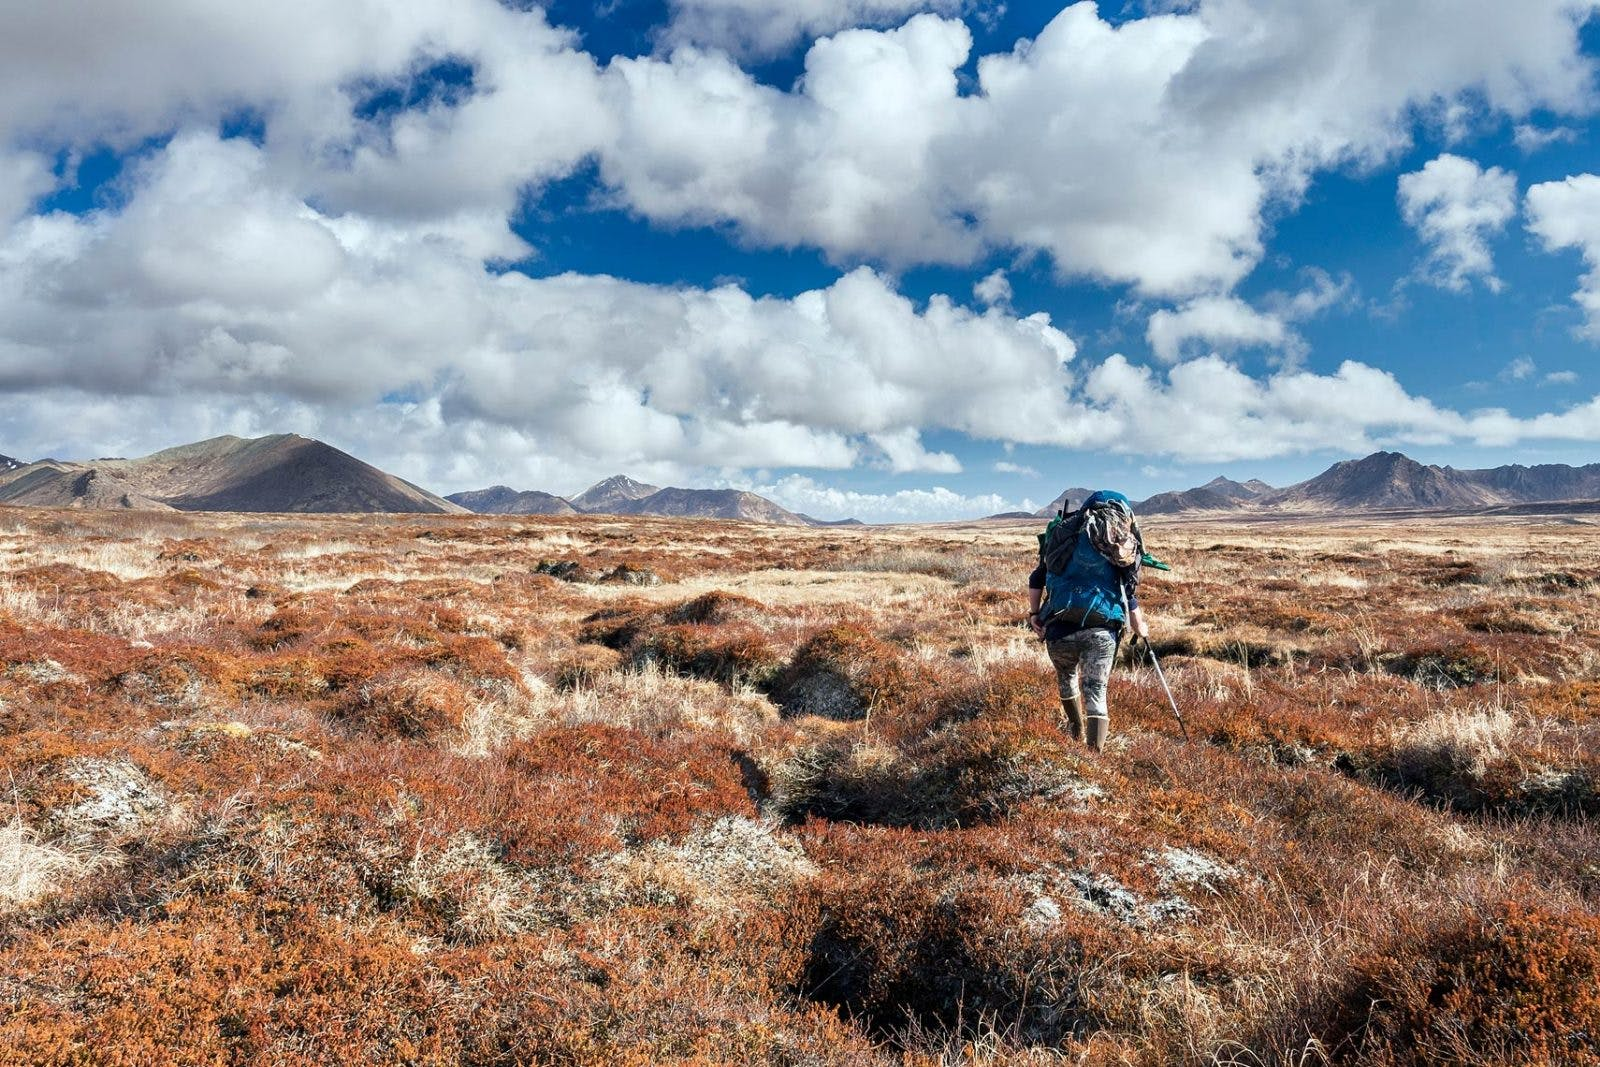 Bjorn Dihle traverses the tundra across a broad valley after 10-hours of hiking along the western edge of Kodiak Island near the convergence of Shelikof Strait and the Pacific Ocean. Dihle, a lifelong Alaskan, is an experienced trekker, bear guide, and writer.